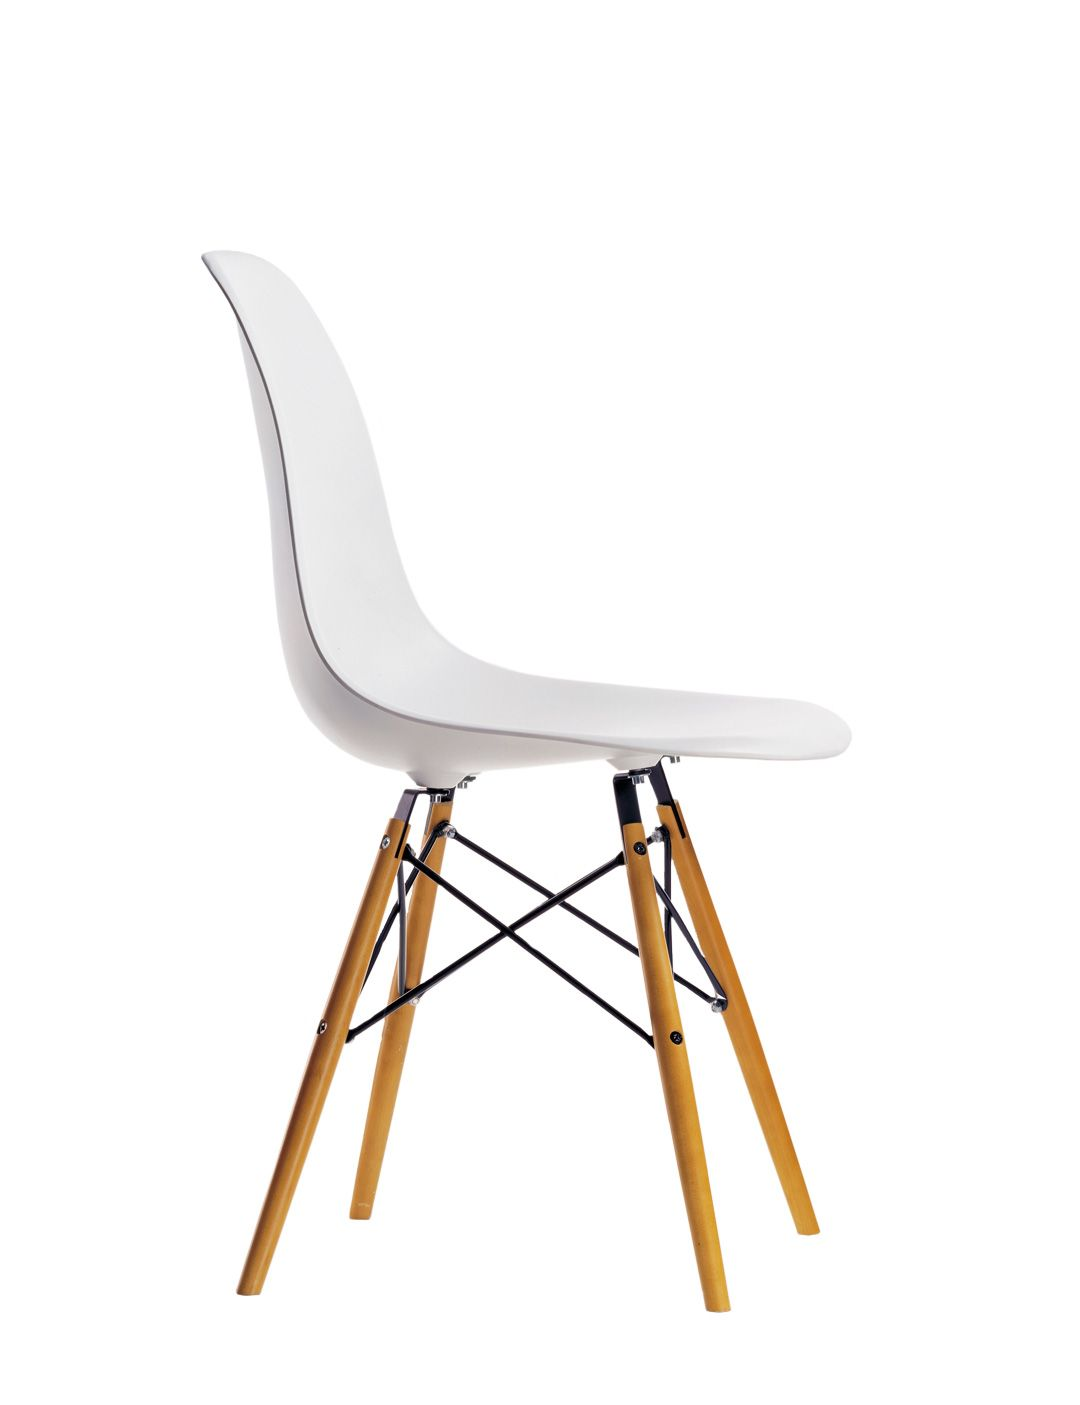 Designer Stuhl Eames eames plastic side chair dsw vitra tables seiten